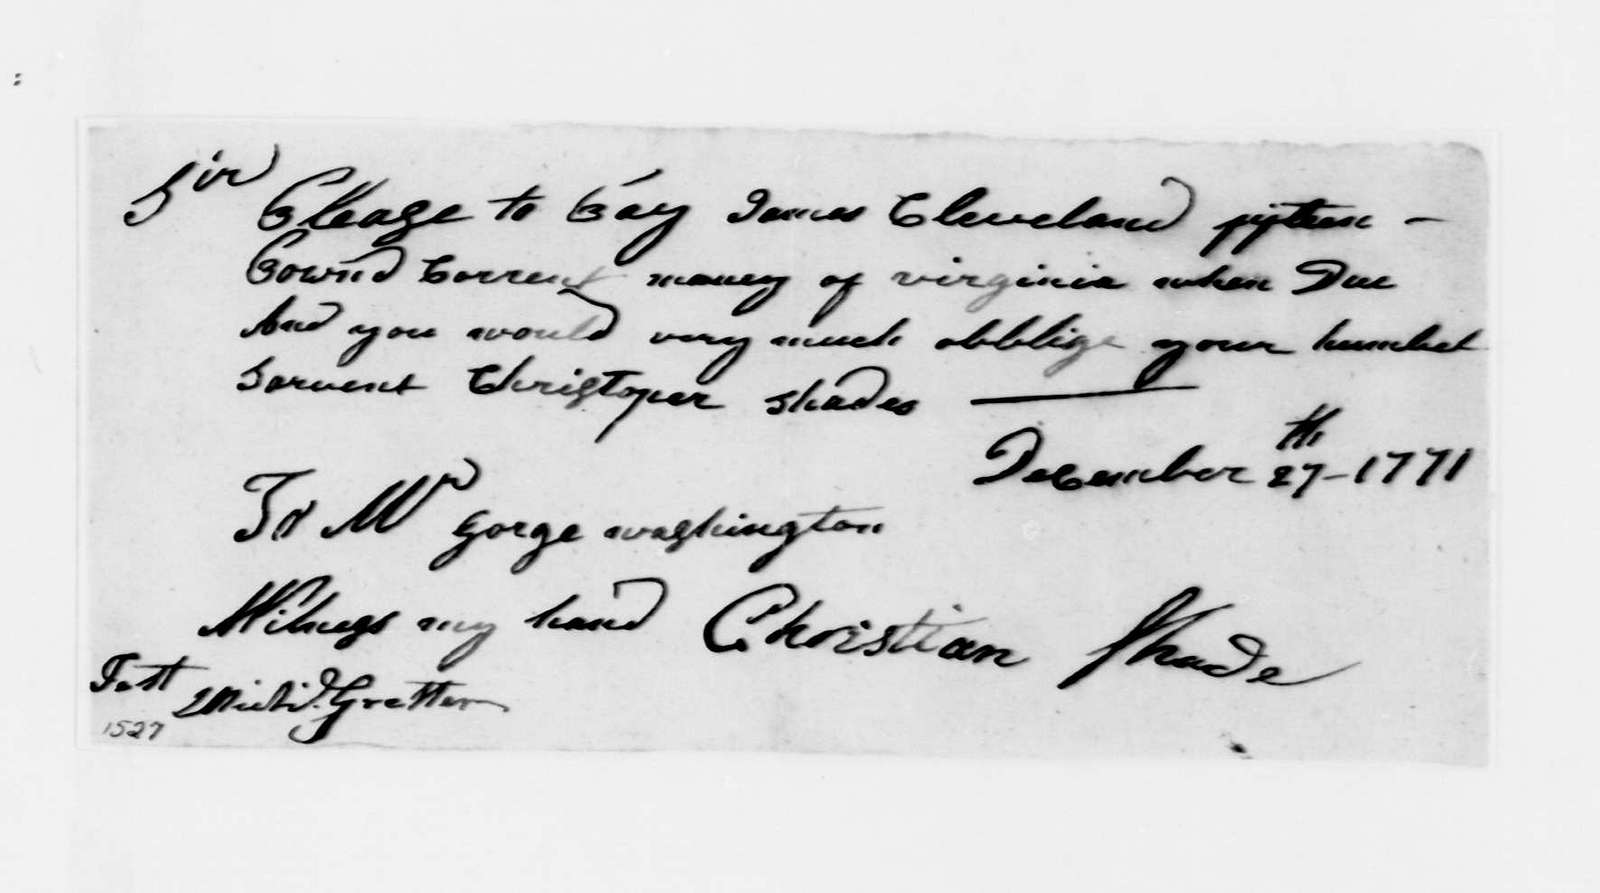 George Washington Papers, Series 4, General Correspondence: Christian Shade to George Washington, December 27, 1771, Order to Pay